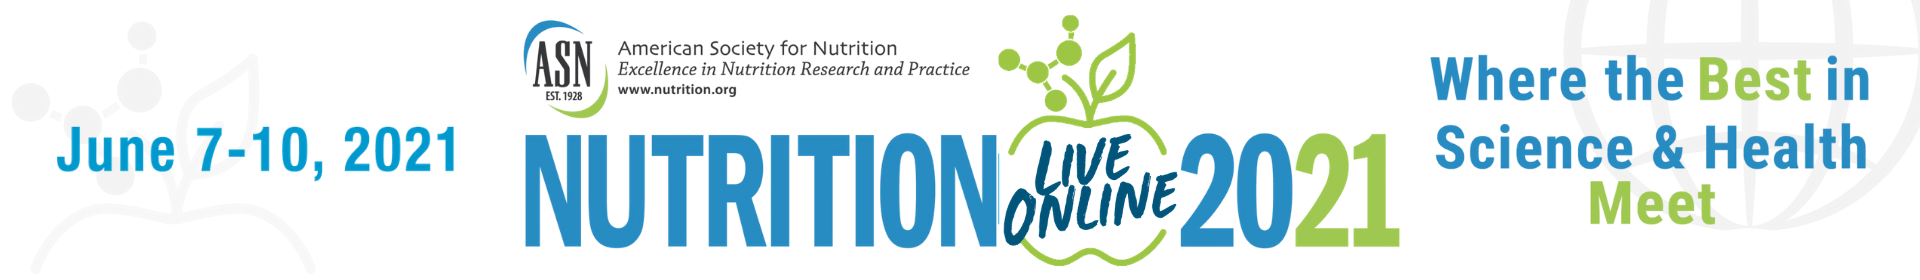 NUTRITION 2021 LIVE ONLINE, ASN Scientific Sessions & Annual Meeting Event Banner